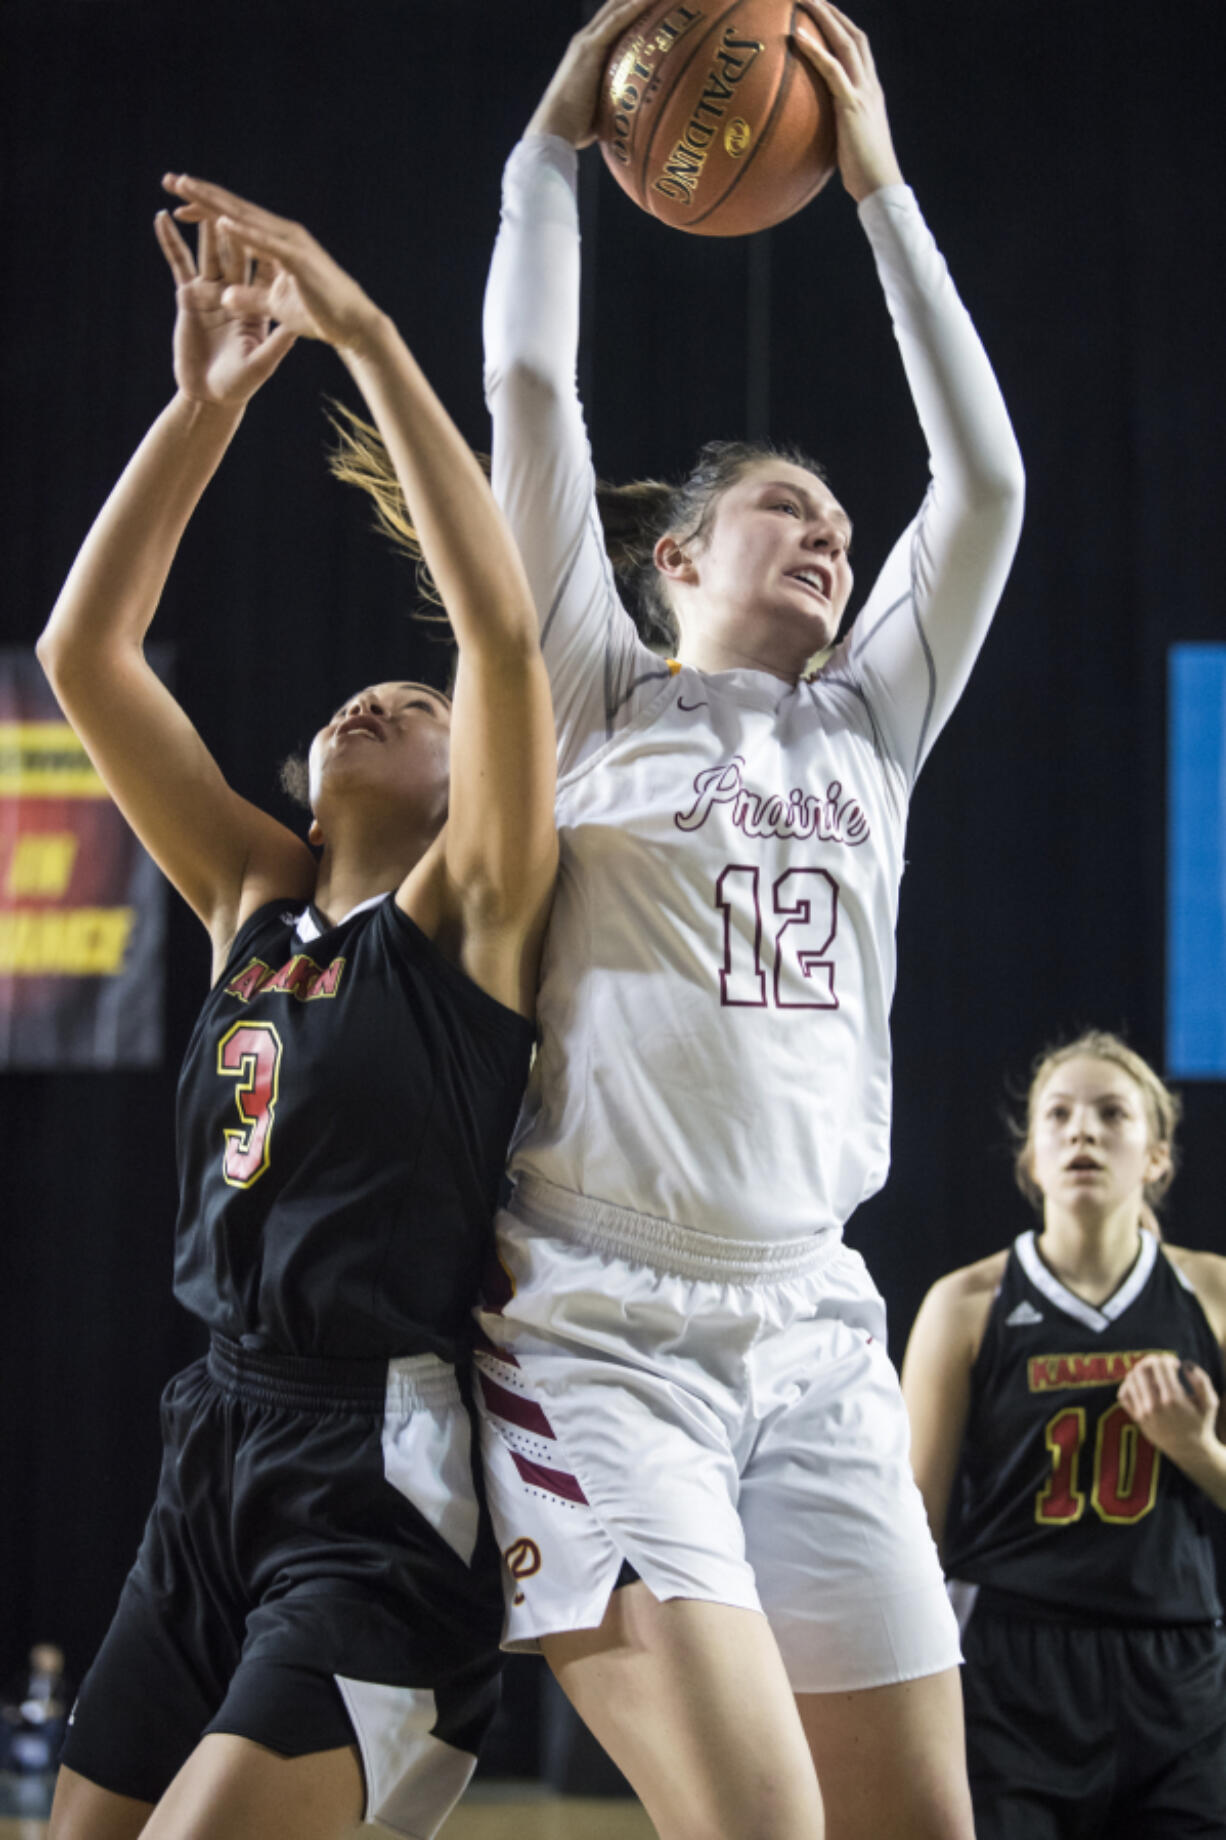 Prairie's Brooke Walling beats Kamiakin's Symone Brown to a rebound during the 3A Hardwood Classic at the Tacoma Dome on Friday March 1, 2019.